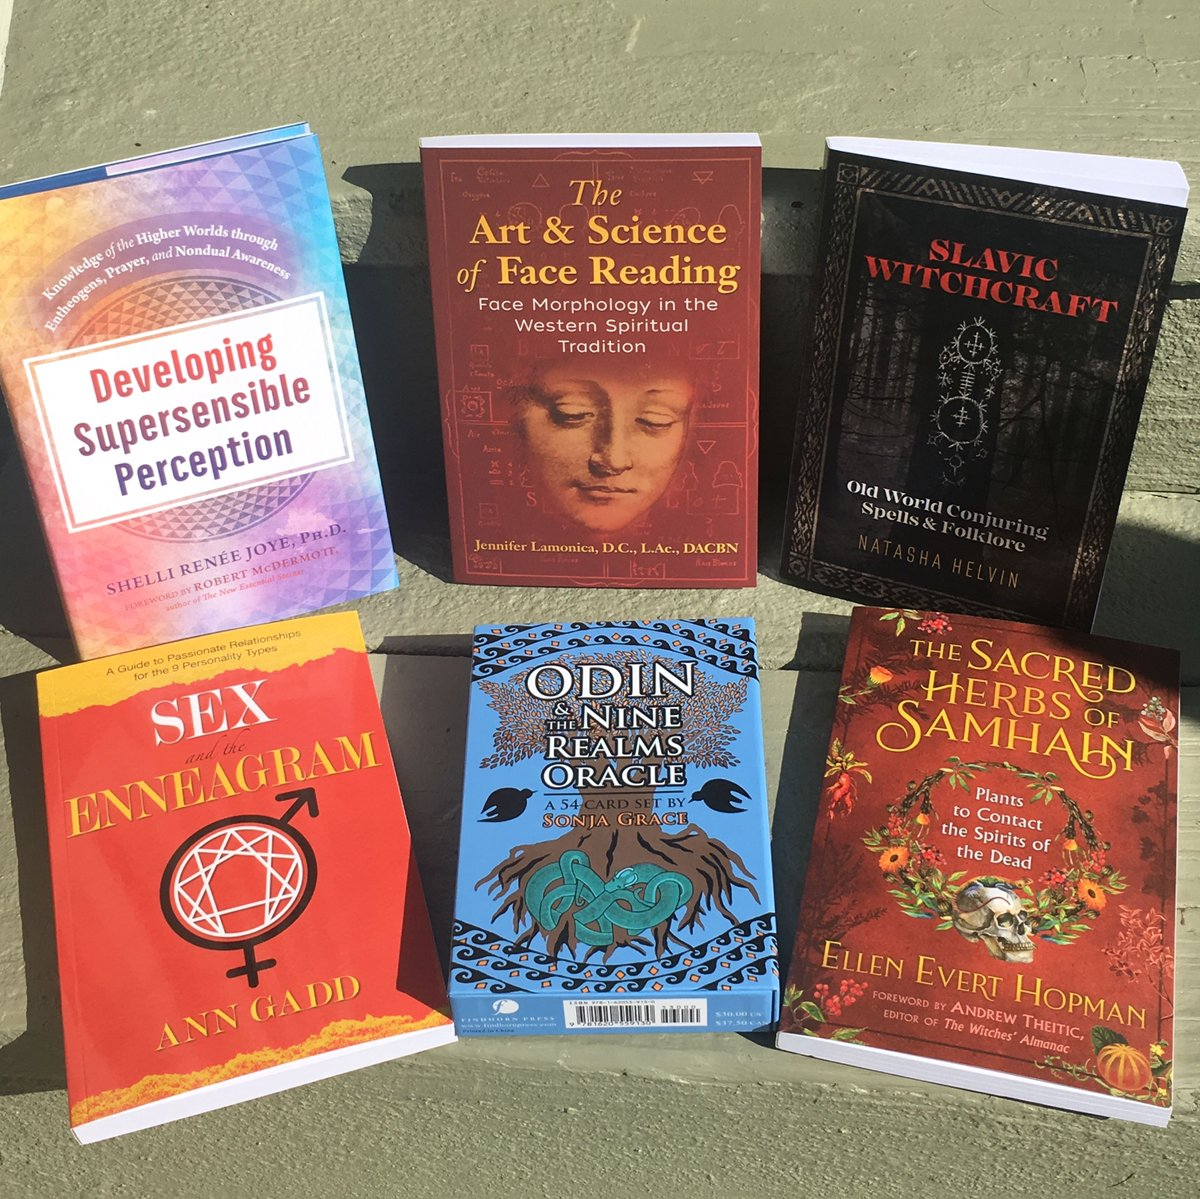 Our August titles take a fresh look at relationships/sex, supersensory powers, face reading, Samhain, Odin, and Slavic Witchcraft.  https://t.co/cg7mo1Pyen  #sex #enneagram #relationships #facereading #samhain #odin #witchcraft #read #books #newreleases https://t.co/EORqMjVPxw